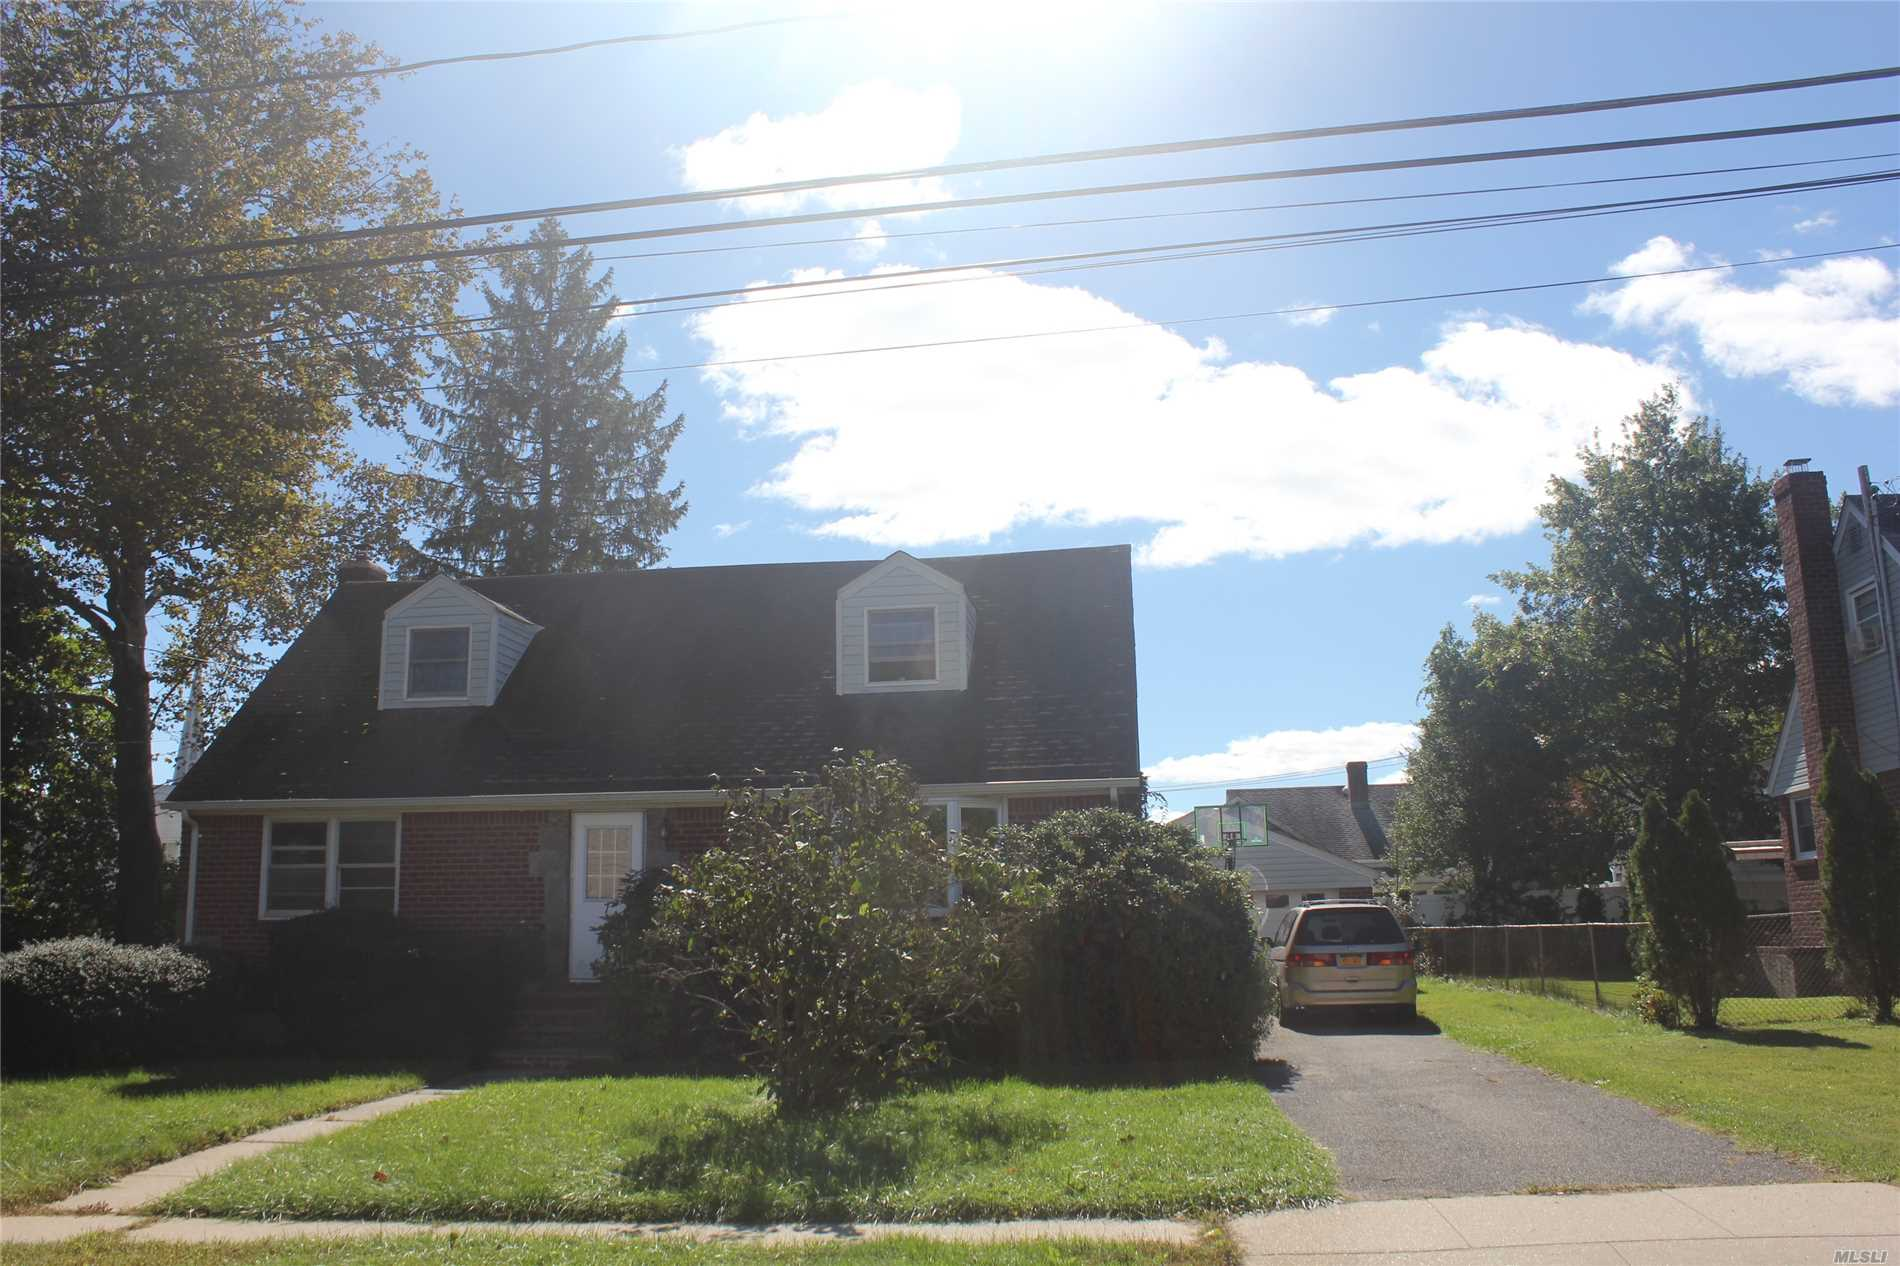 Newly Renovated Large Expanded Cape With 5 Bedrooms, Walking Distance To Syosset Training Station. Available Now!!!!